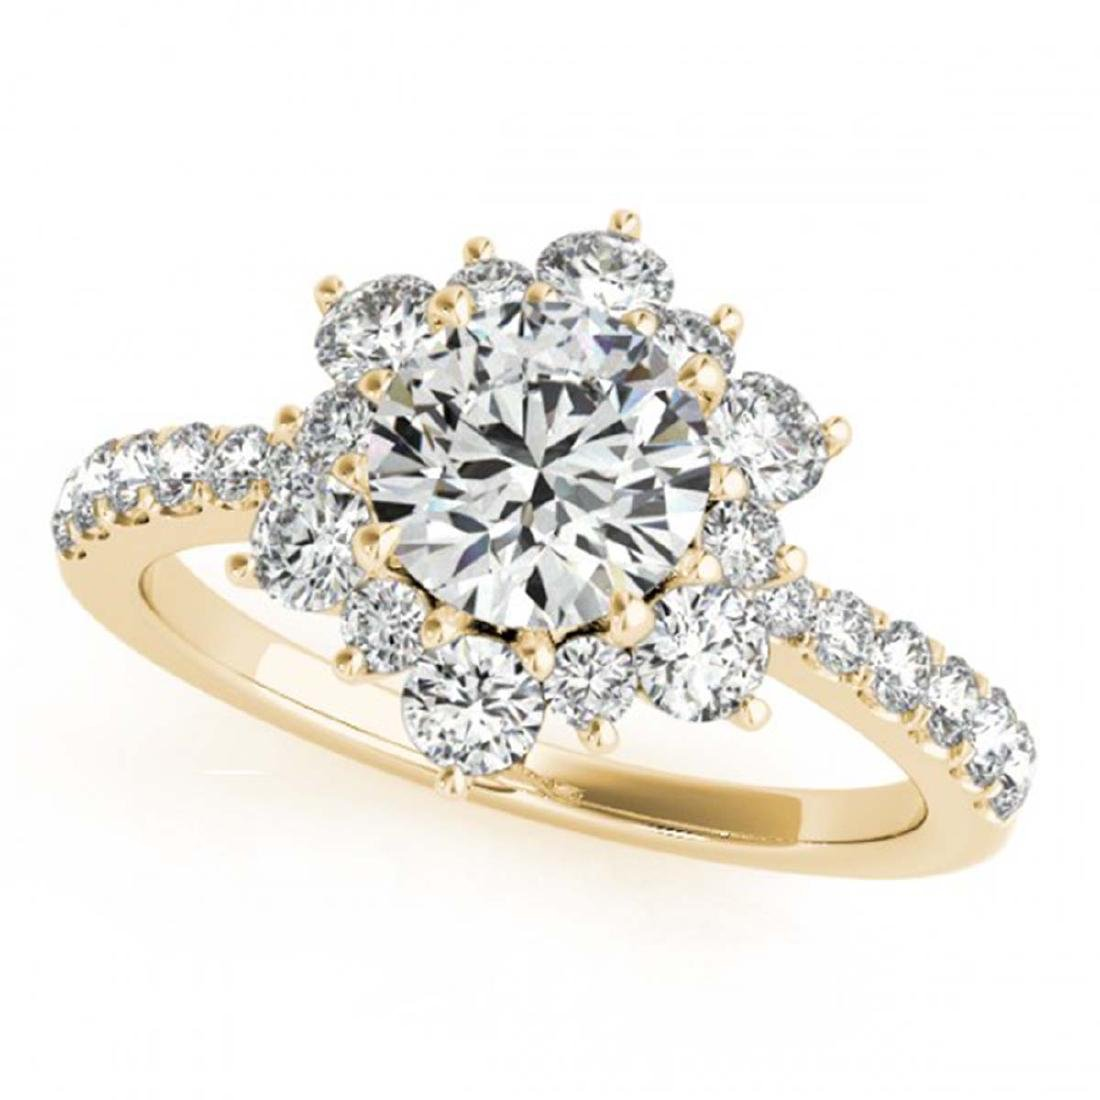 2.19 ctw VS/SI Diamond Halo Ring 18K Yellow Gold -